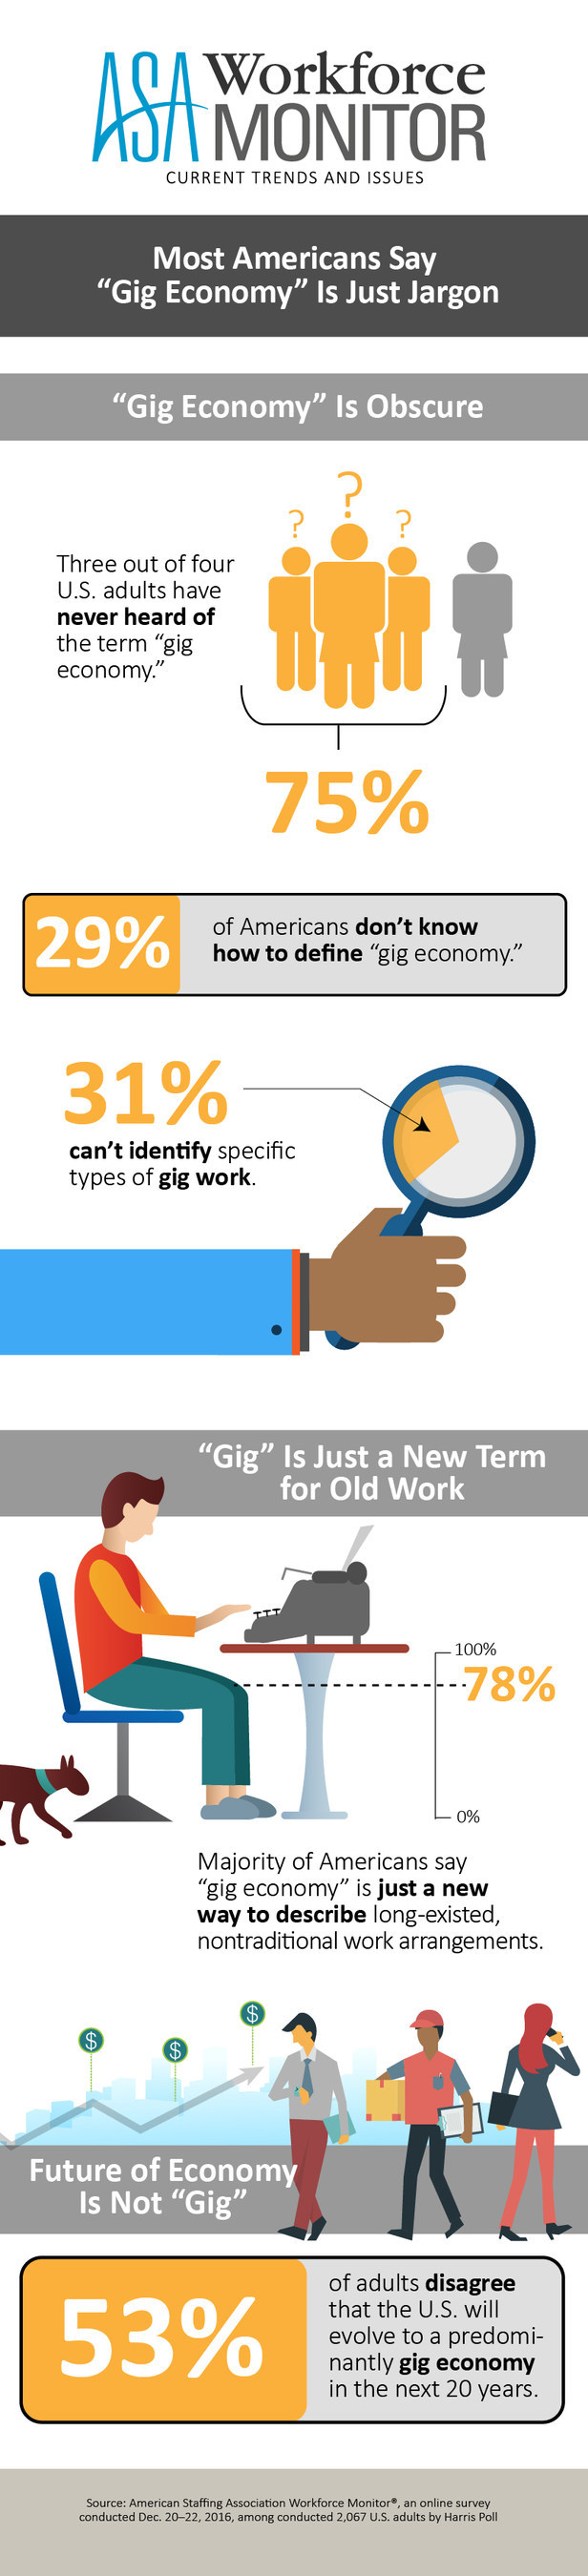 "Most Americans Say ""Gig Economy"" Is Just Jargon"